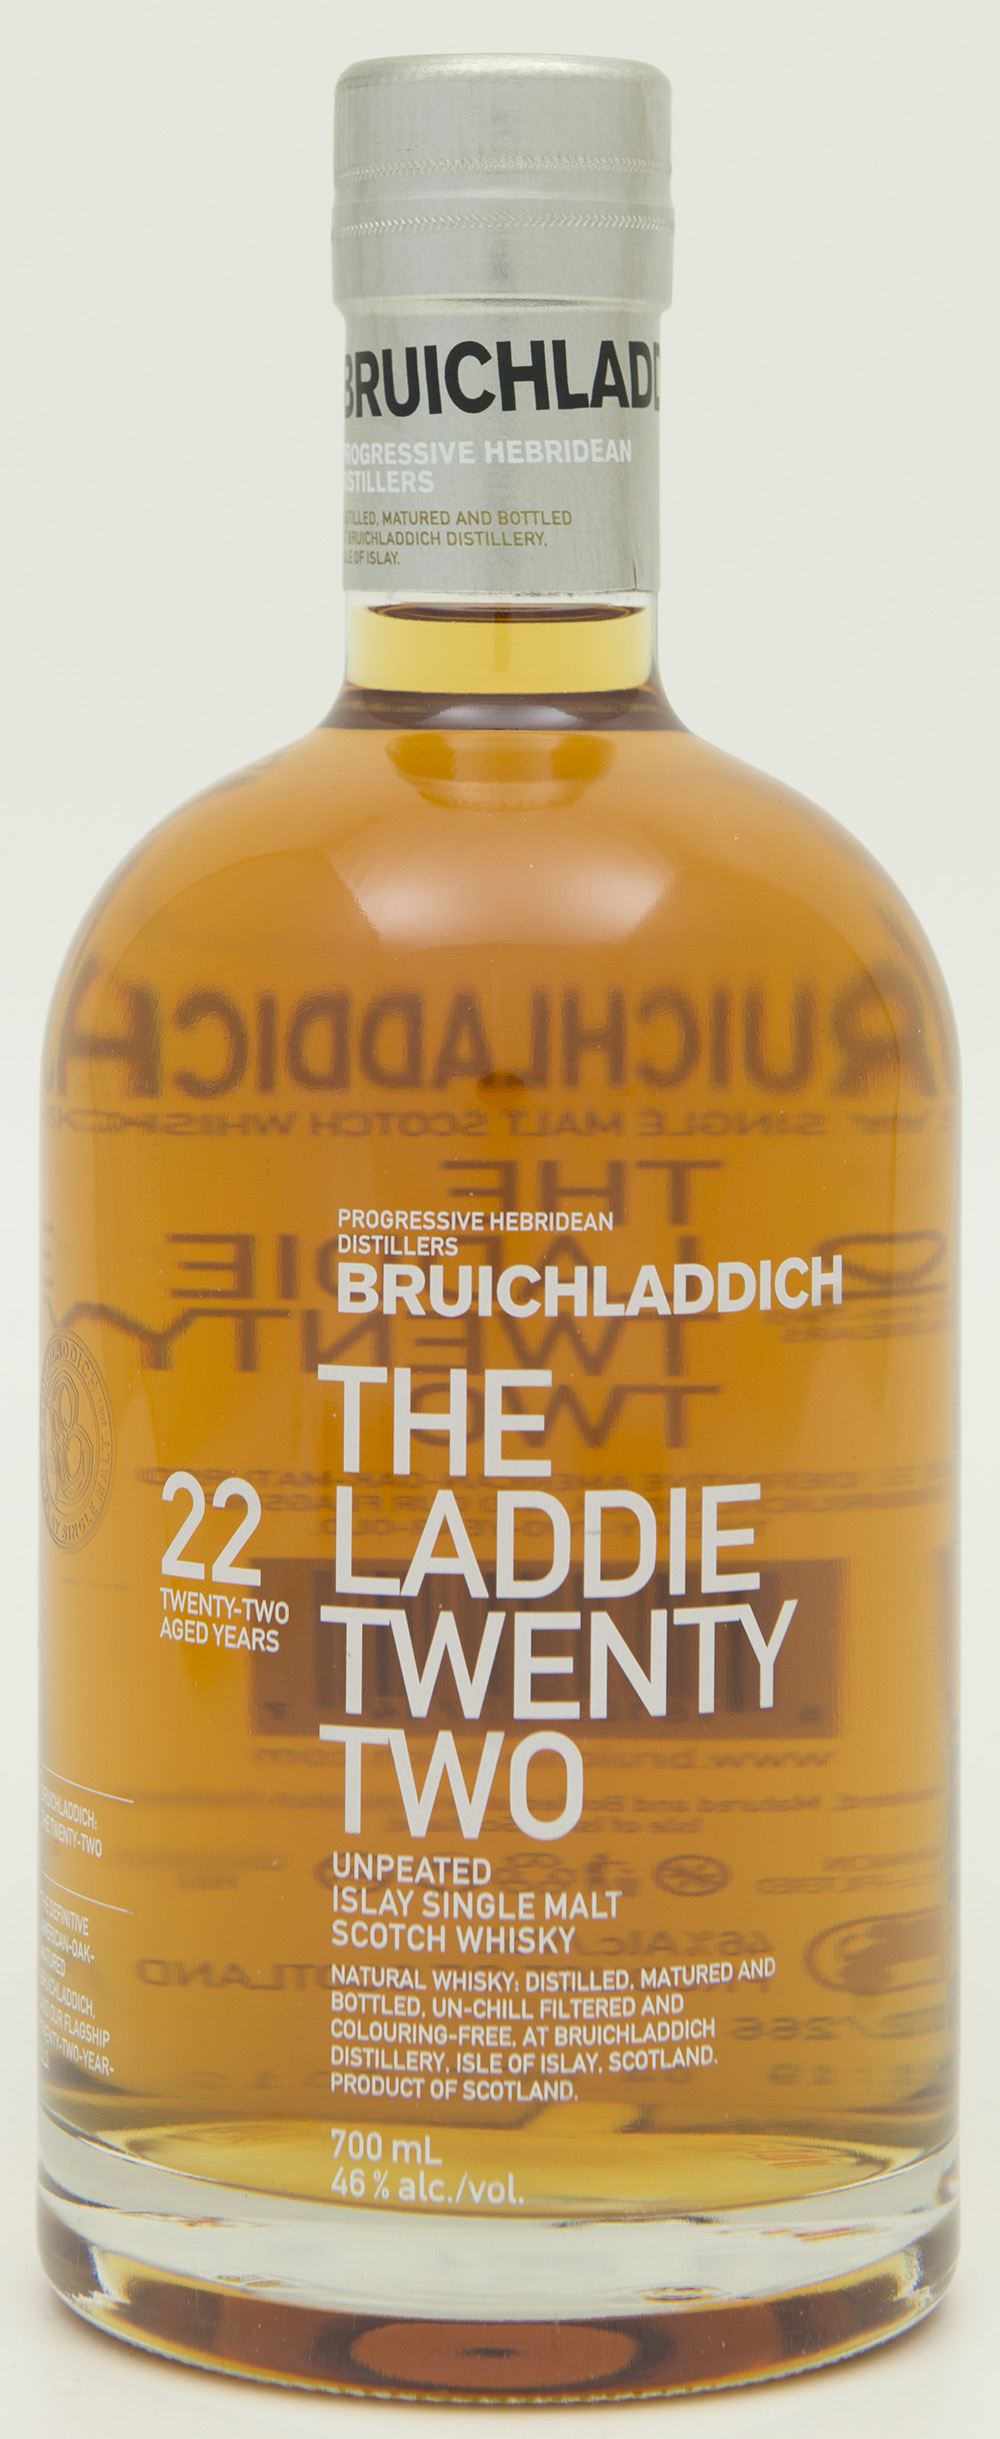 Billede: DSC_0772 - Bruichladdich The Laddie Twenty Two - bottle front.jpg